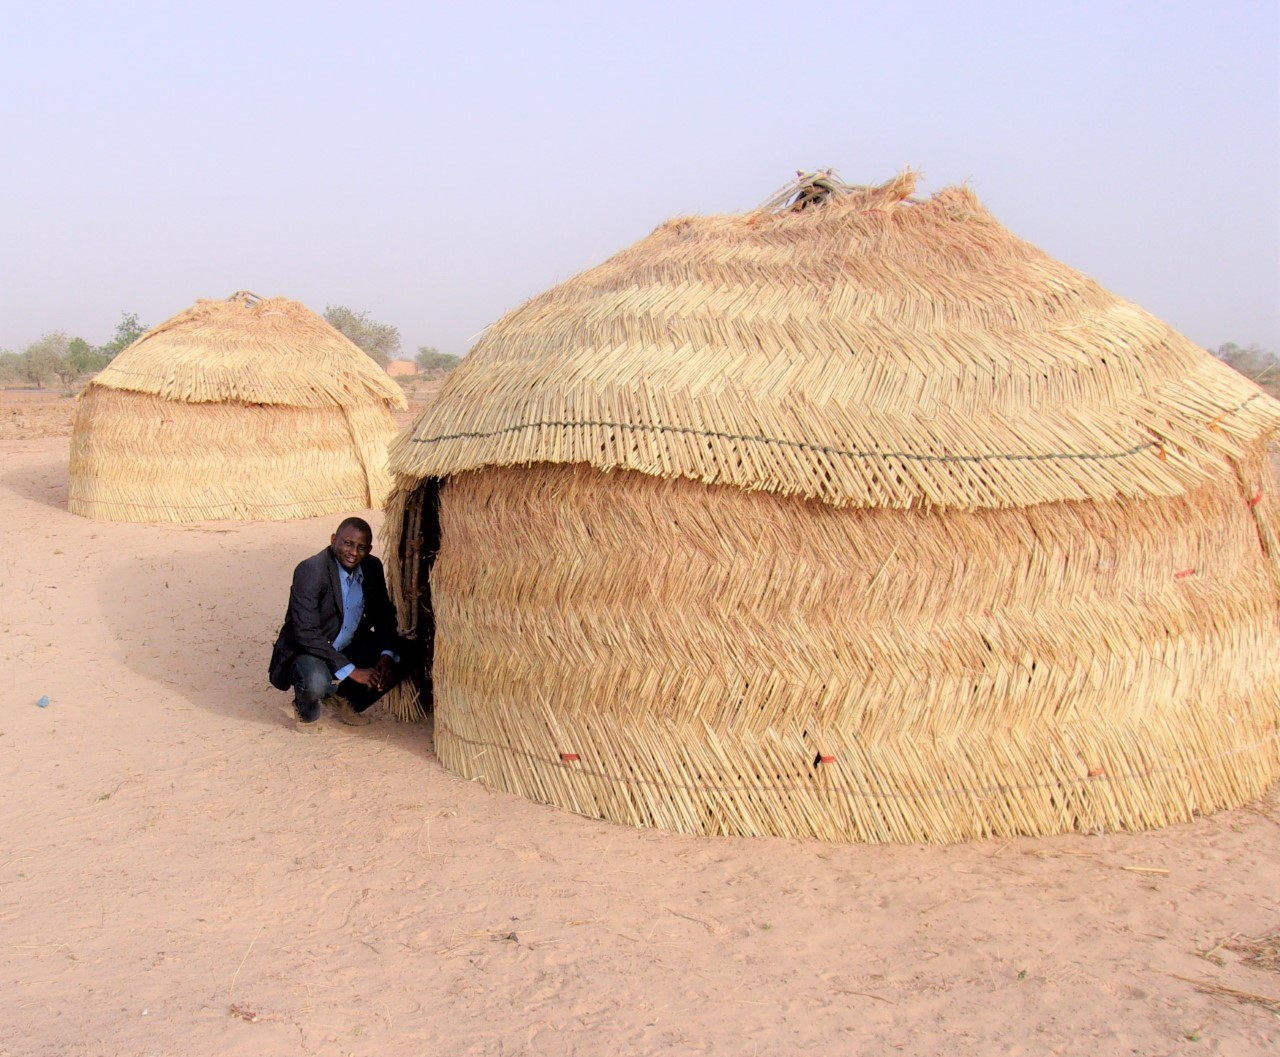 Mr. Ayouba Jadi of the EERN WASH Section finding shade by two classrooms of the newly formed Bible College in Mailo, about 4 hours east of Niamey.